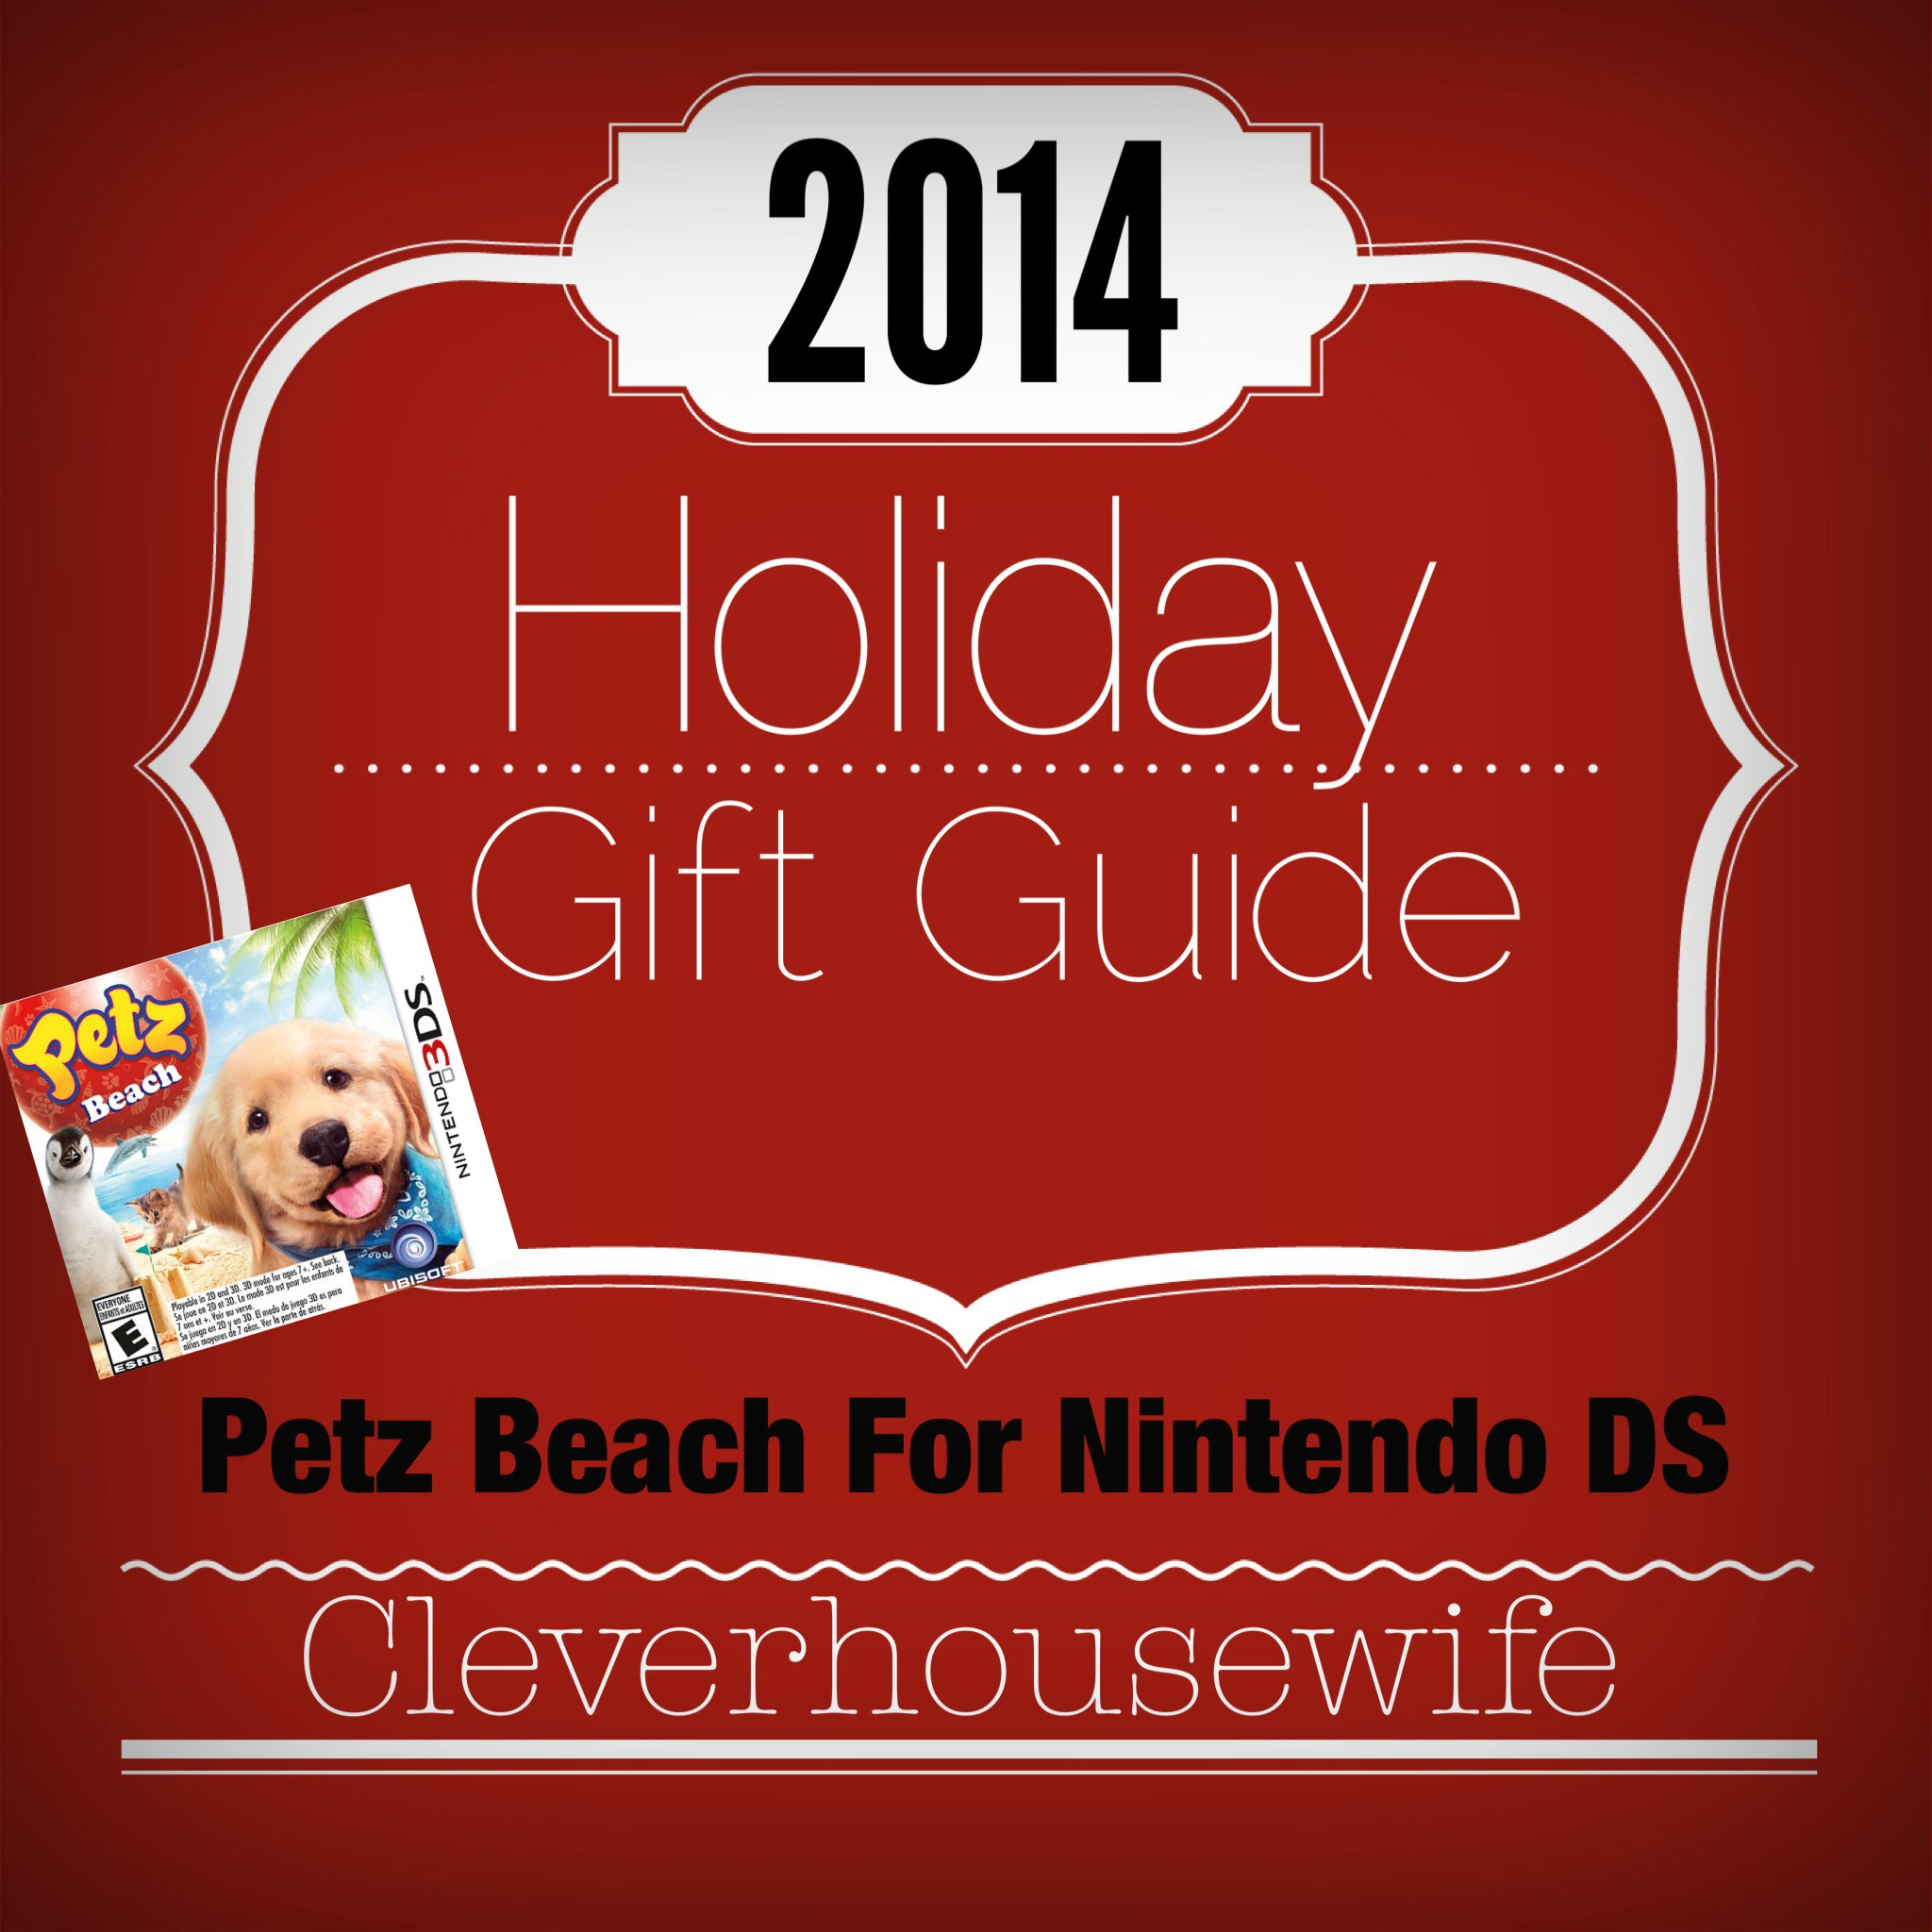 2014 Holiday Gift Guide: Petz Beach for Nintendo 3DS